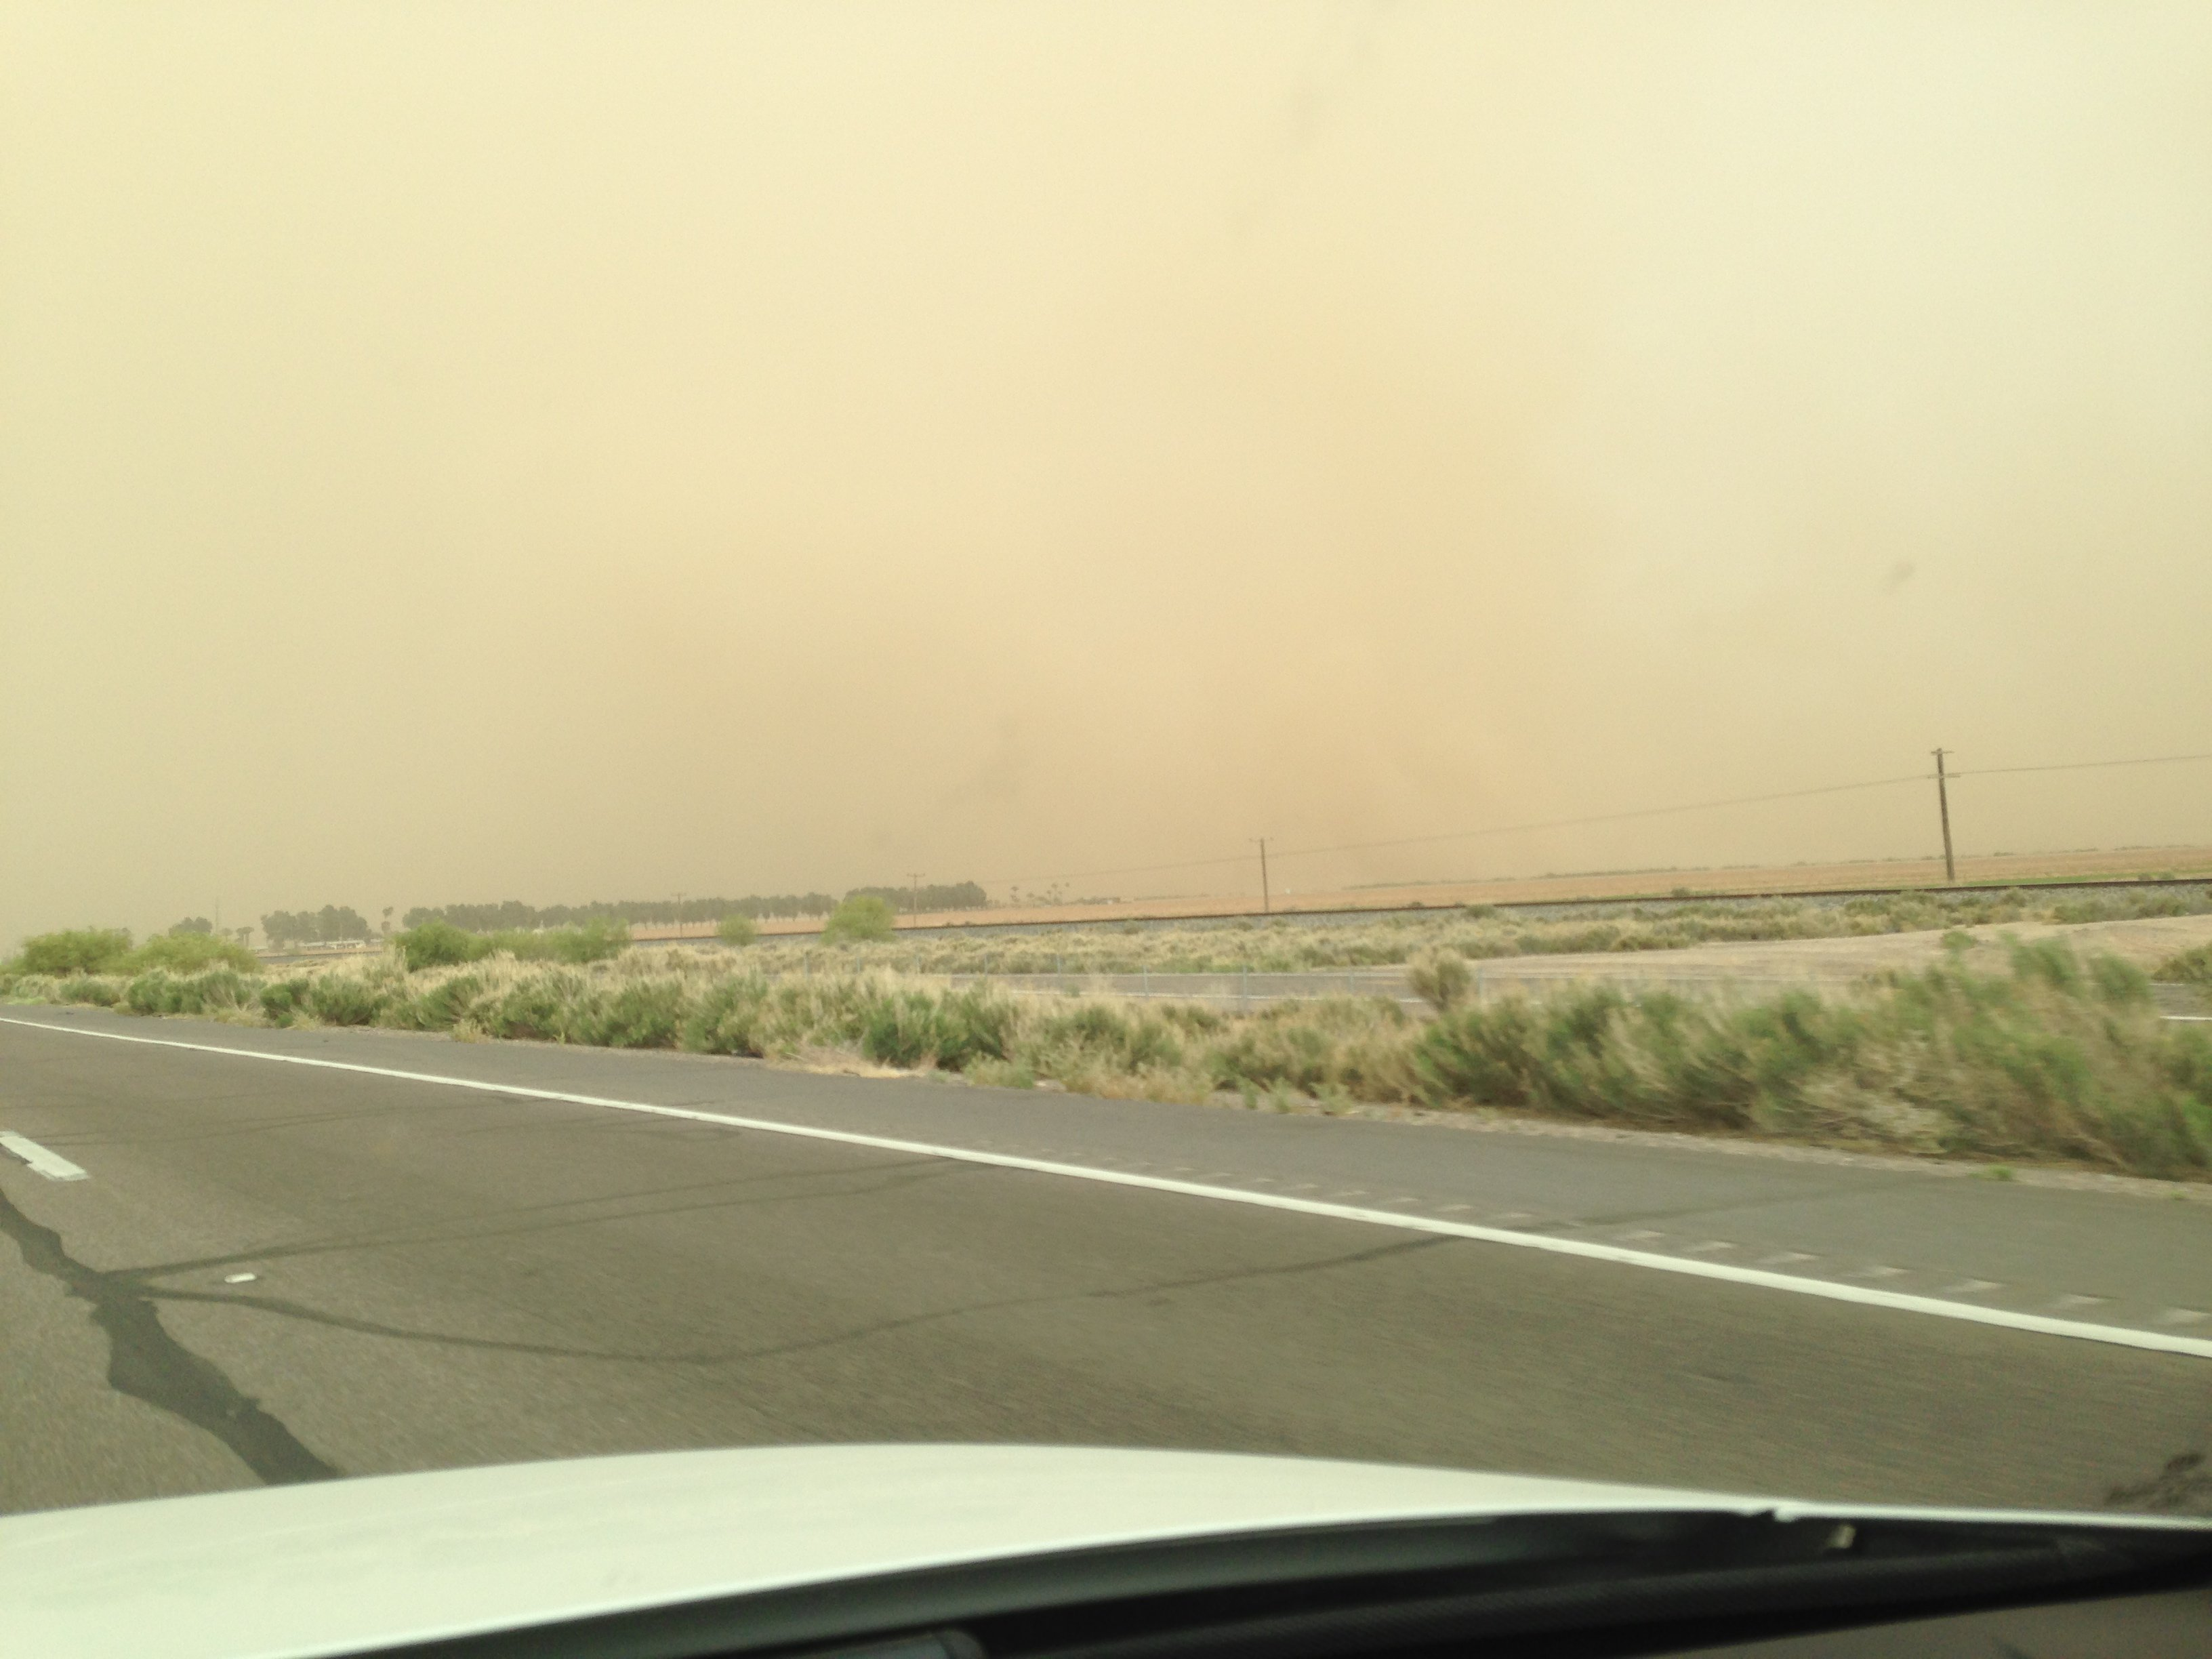 In Gila Bend heading toward Phoenix (Source: CBS 5 News, Steve Soliz)